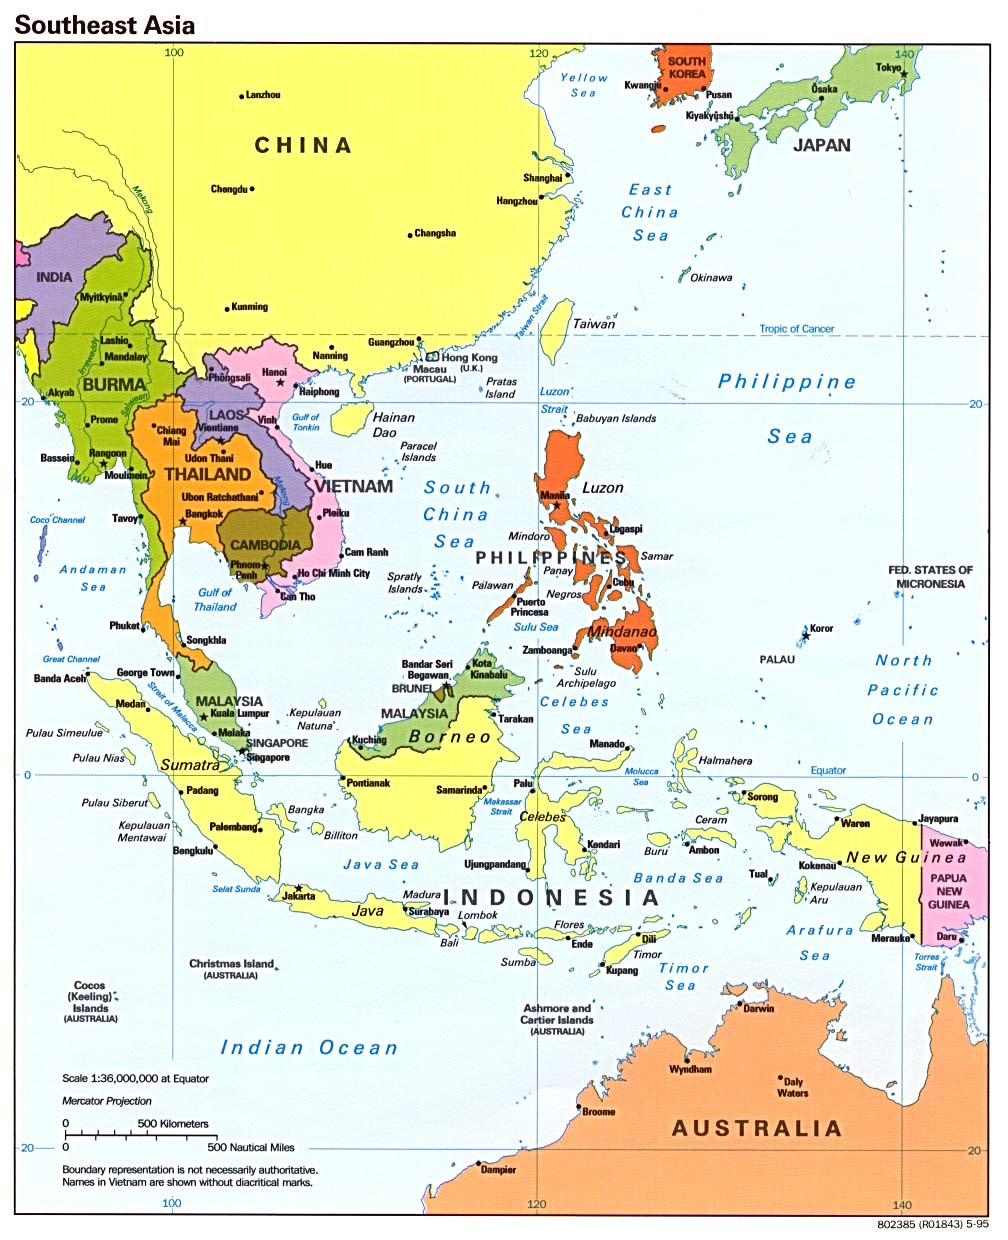 Asia Maps PerryCasta eda Map Collection UT Library Online – East Asia and Southeast Asia Map